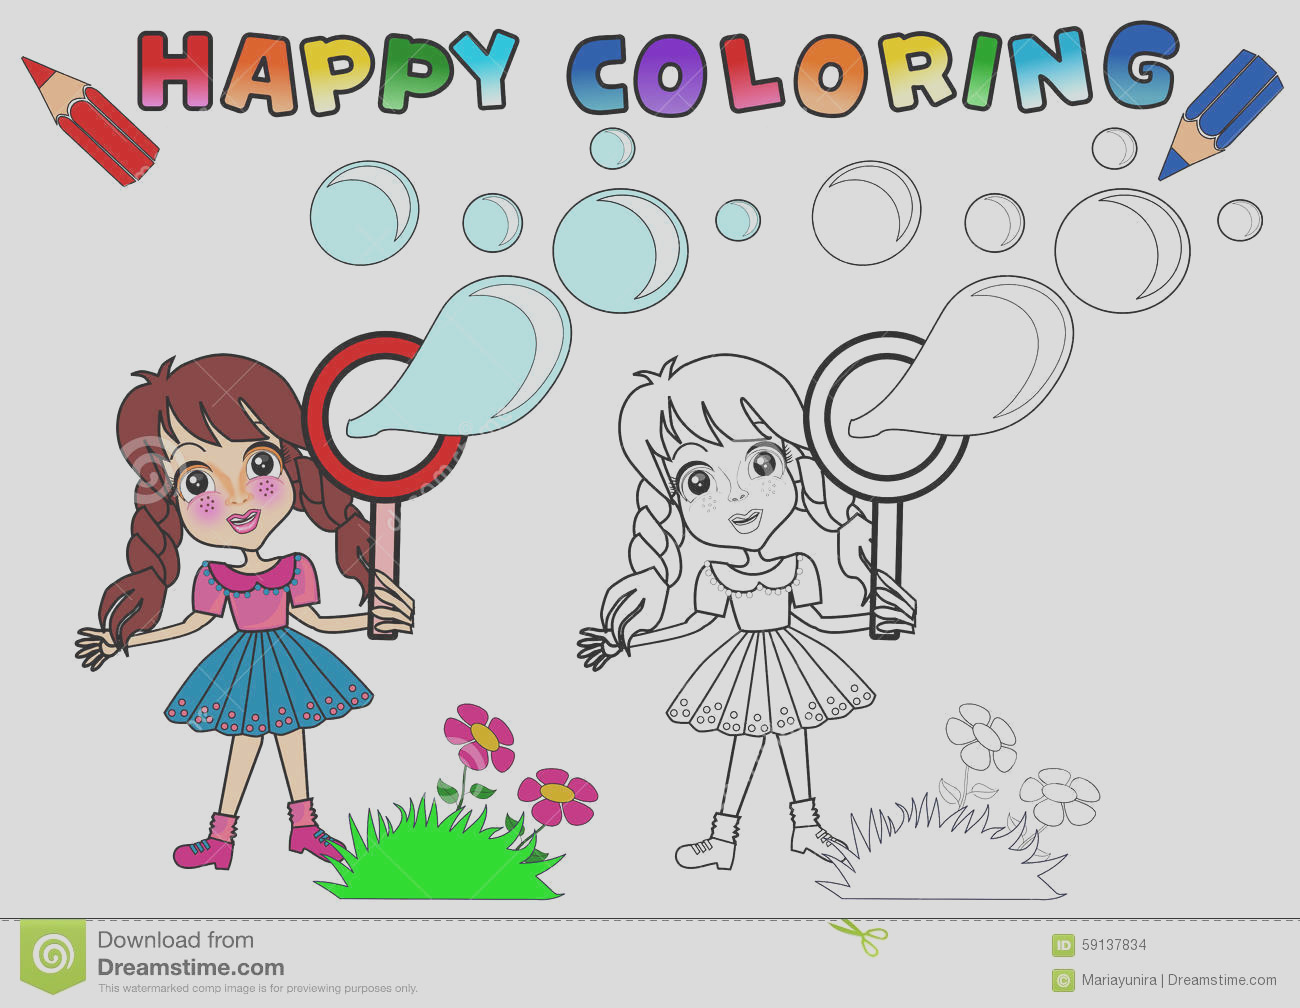 stock illustration coloring book kids cute girl character illustration girl character name gloria image